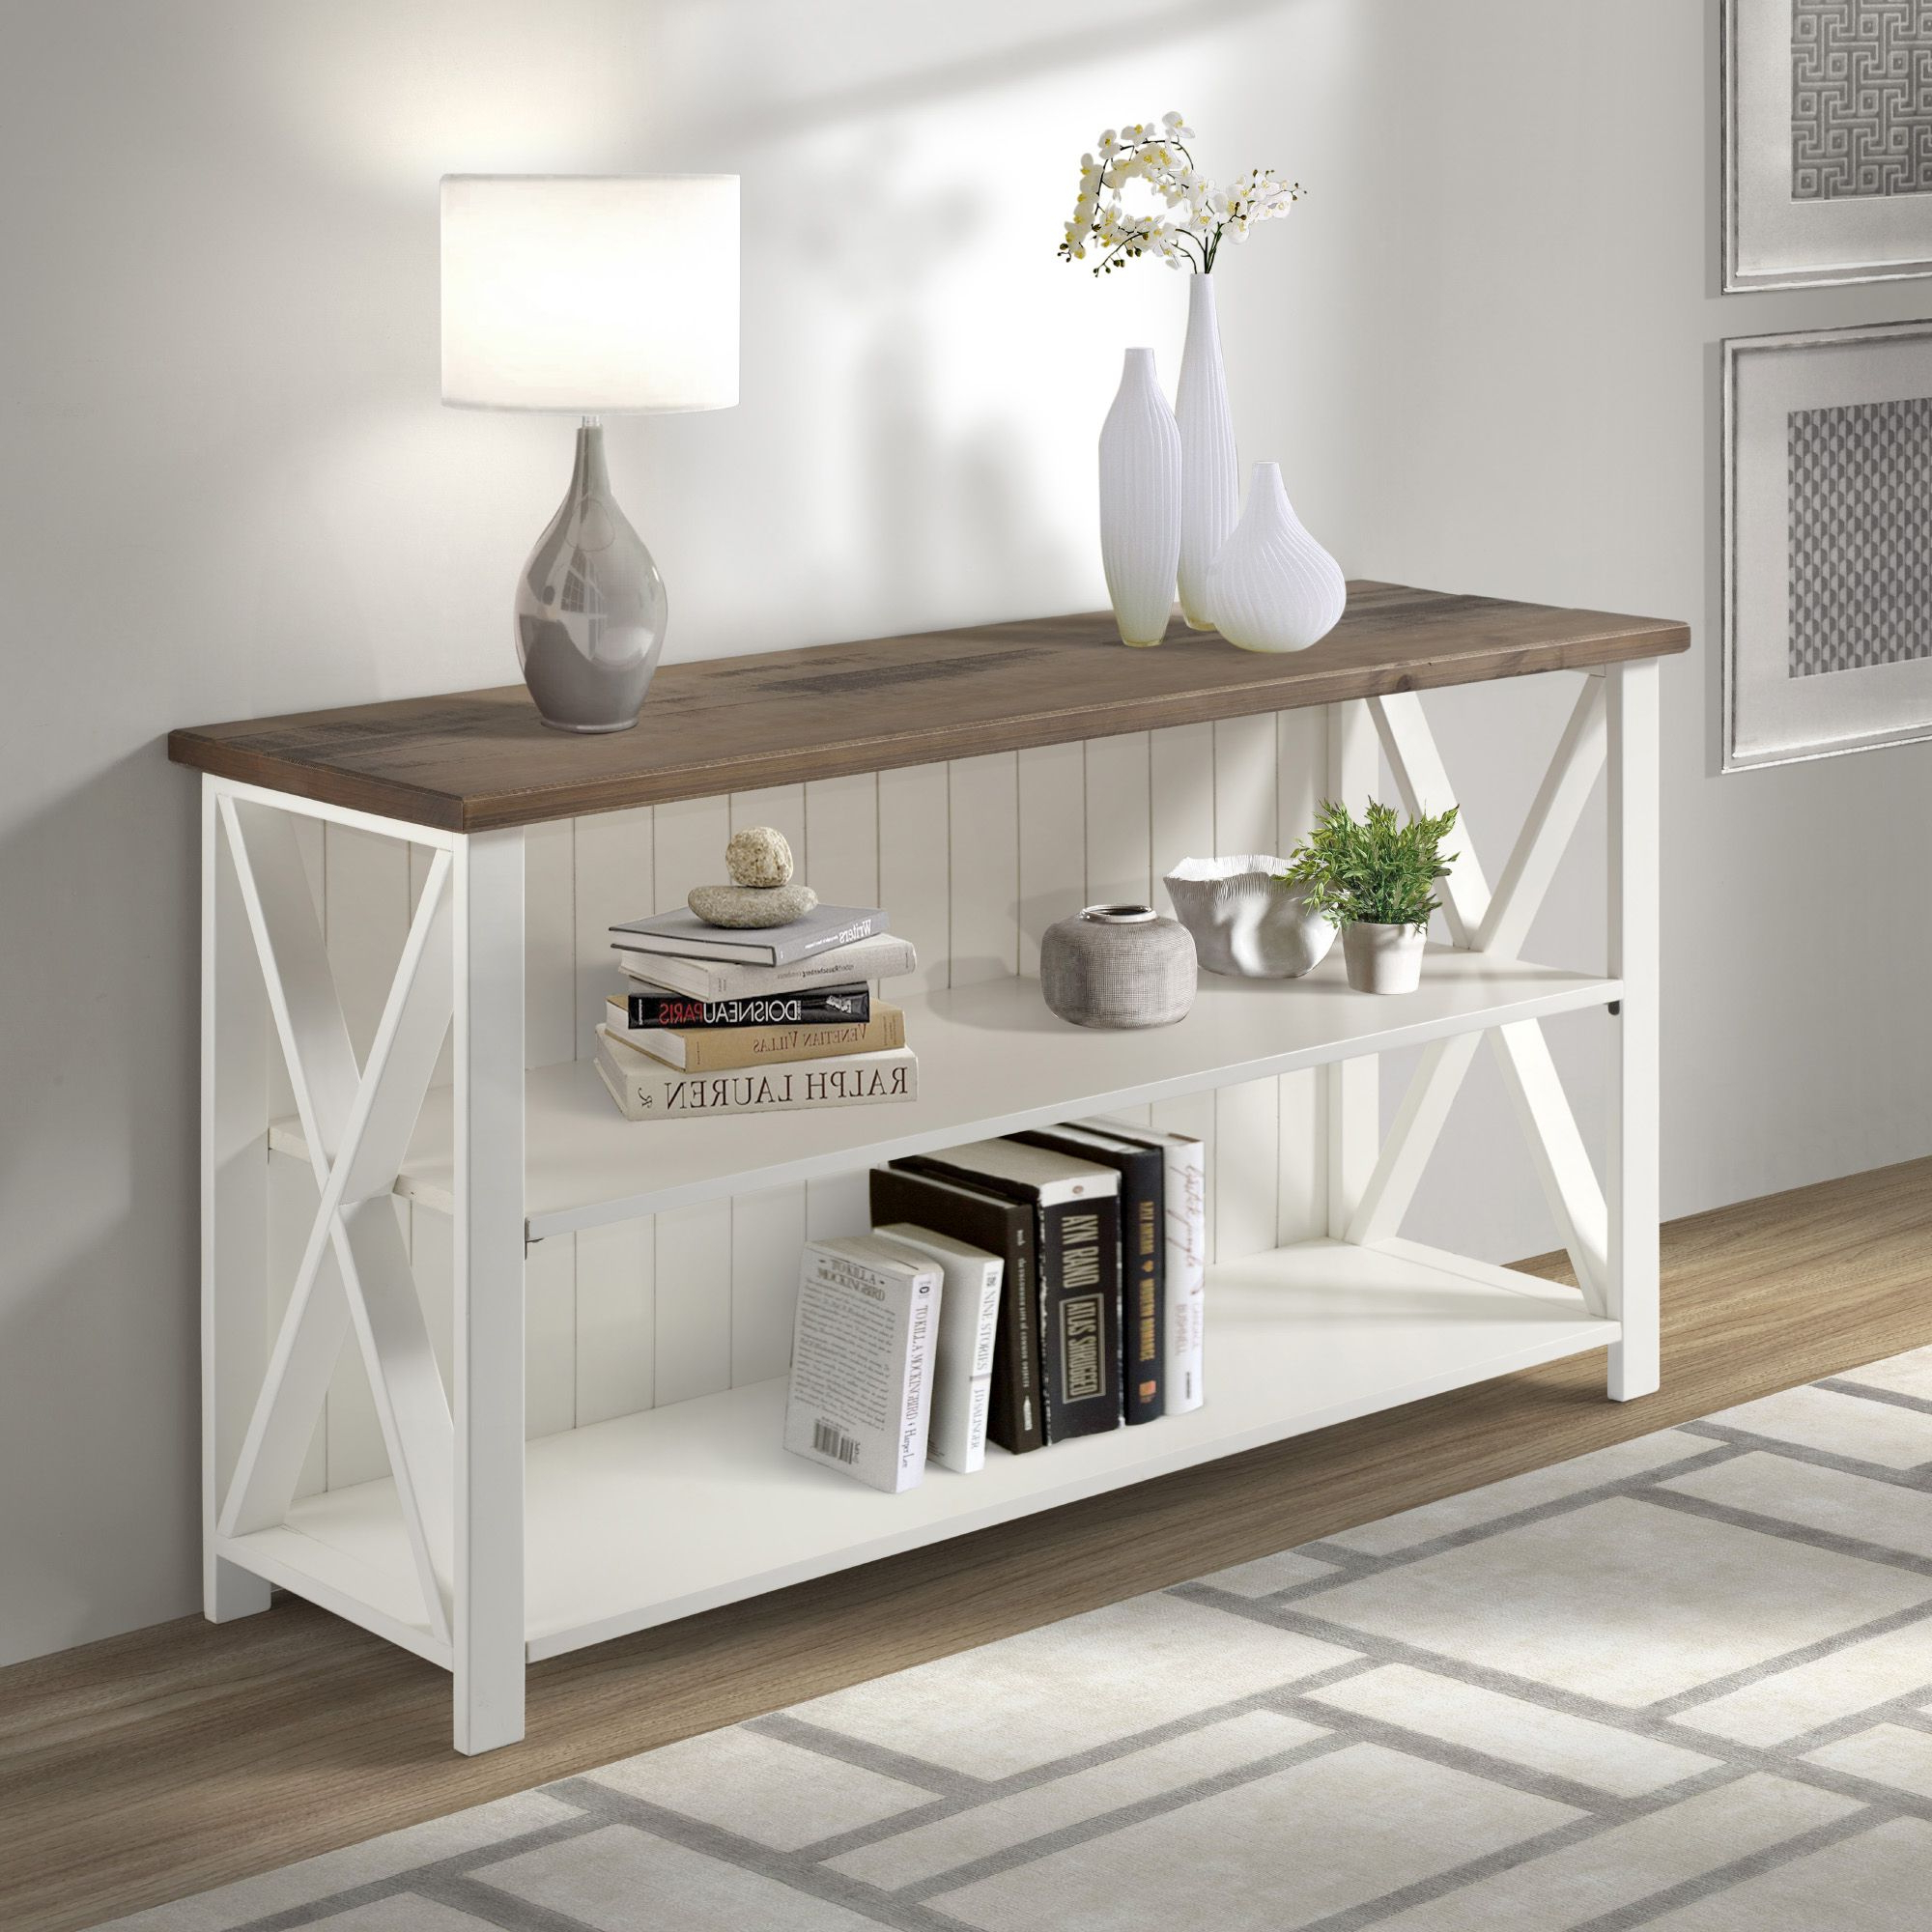 Fashionable Woven Paths Farmhouse Sliding Barn Door Tv Stands With Multiple Finishes Inside Woven Paths Solid Wood Storage Console Table, White (View 6 of 10)